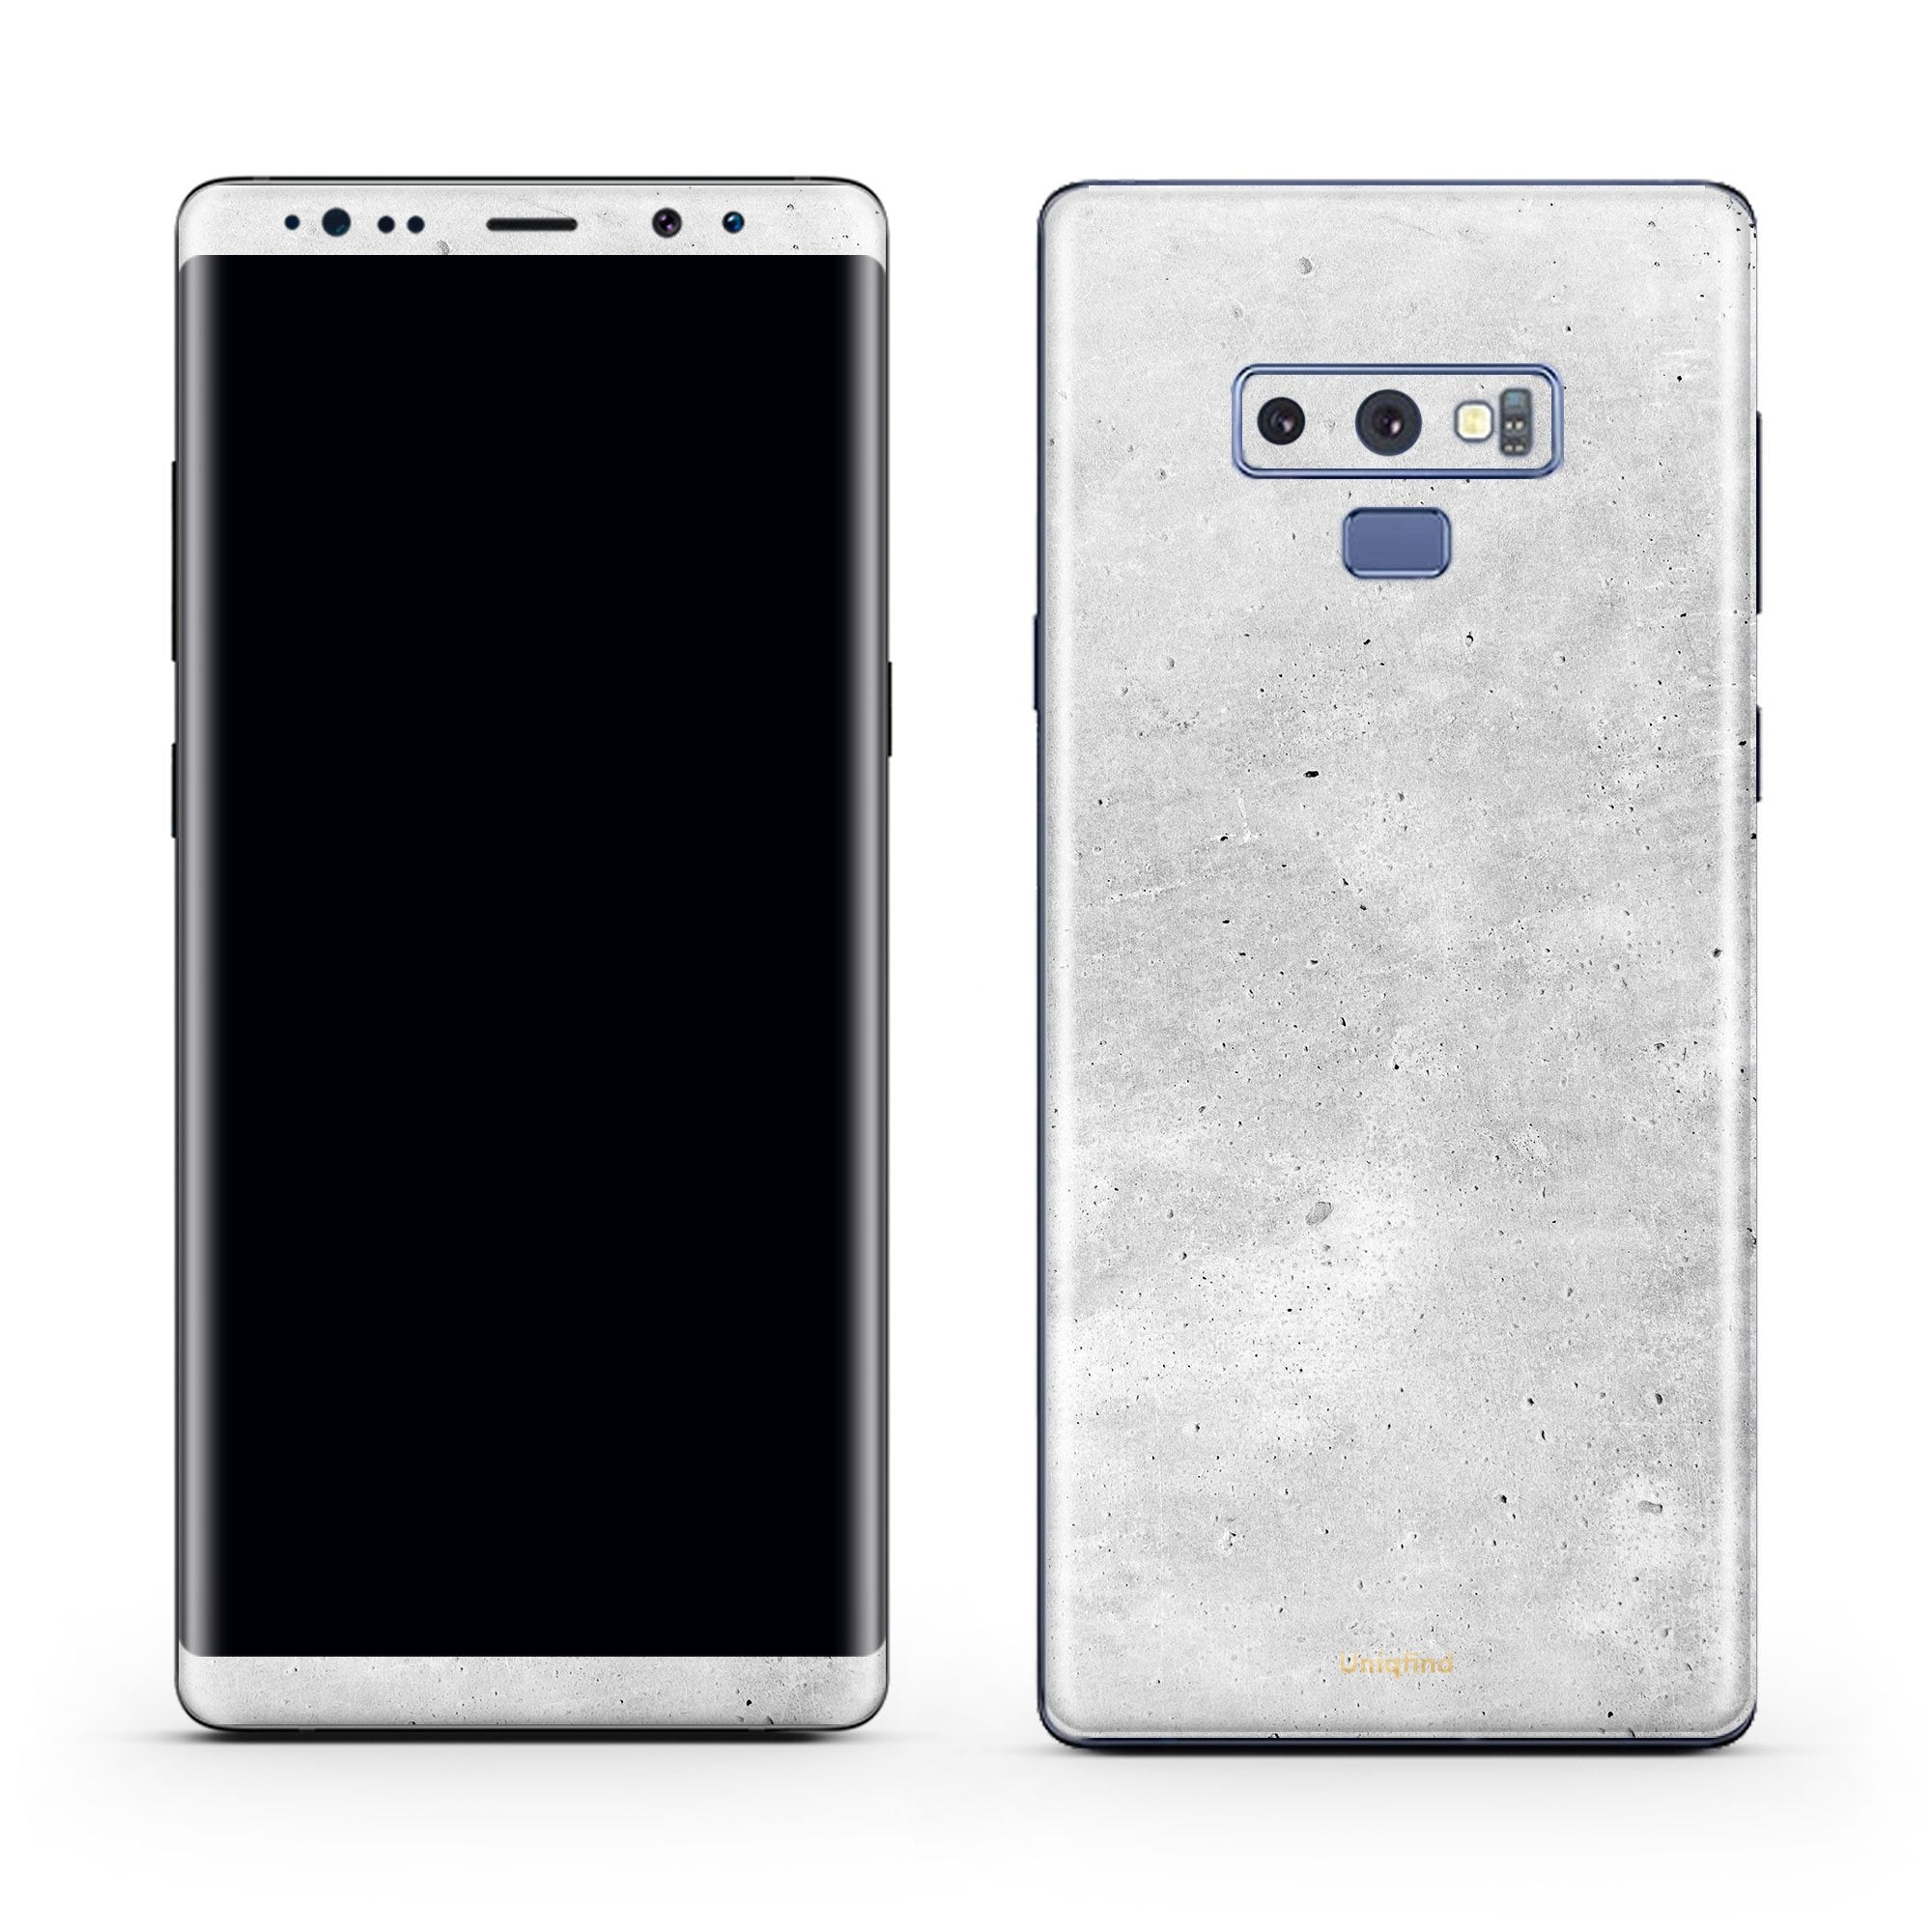 Concrete Galaxy Note 9 Skin + Case